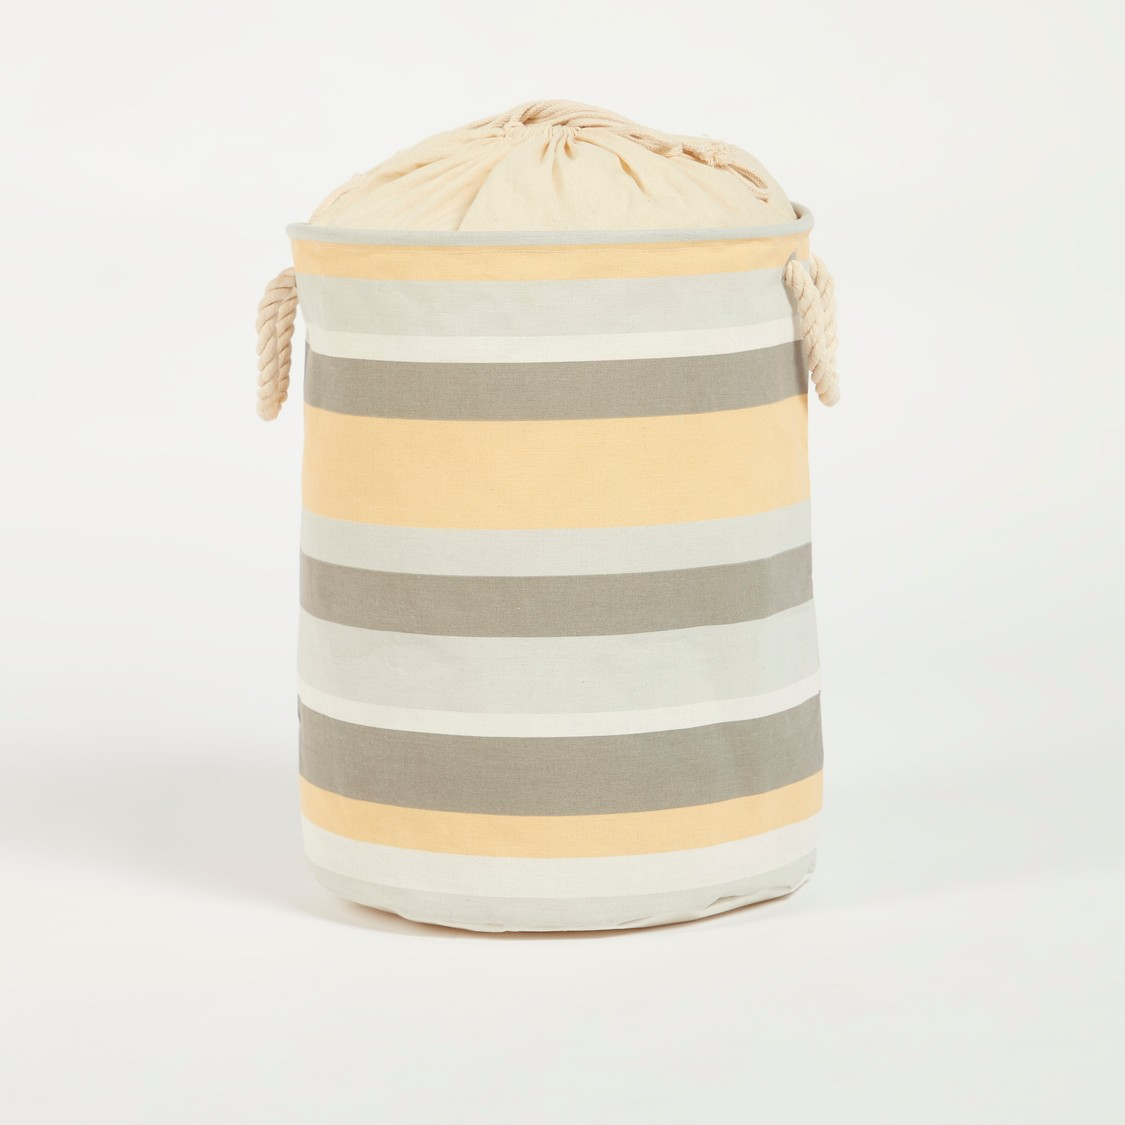 Striped Laundry Hamper with Handles and Drawstring Closure